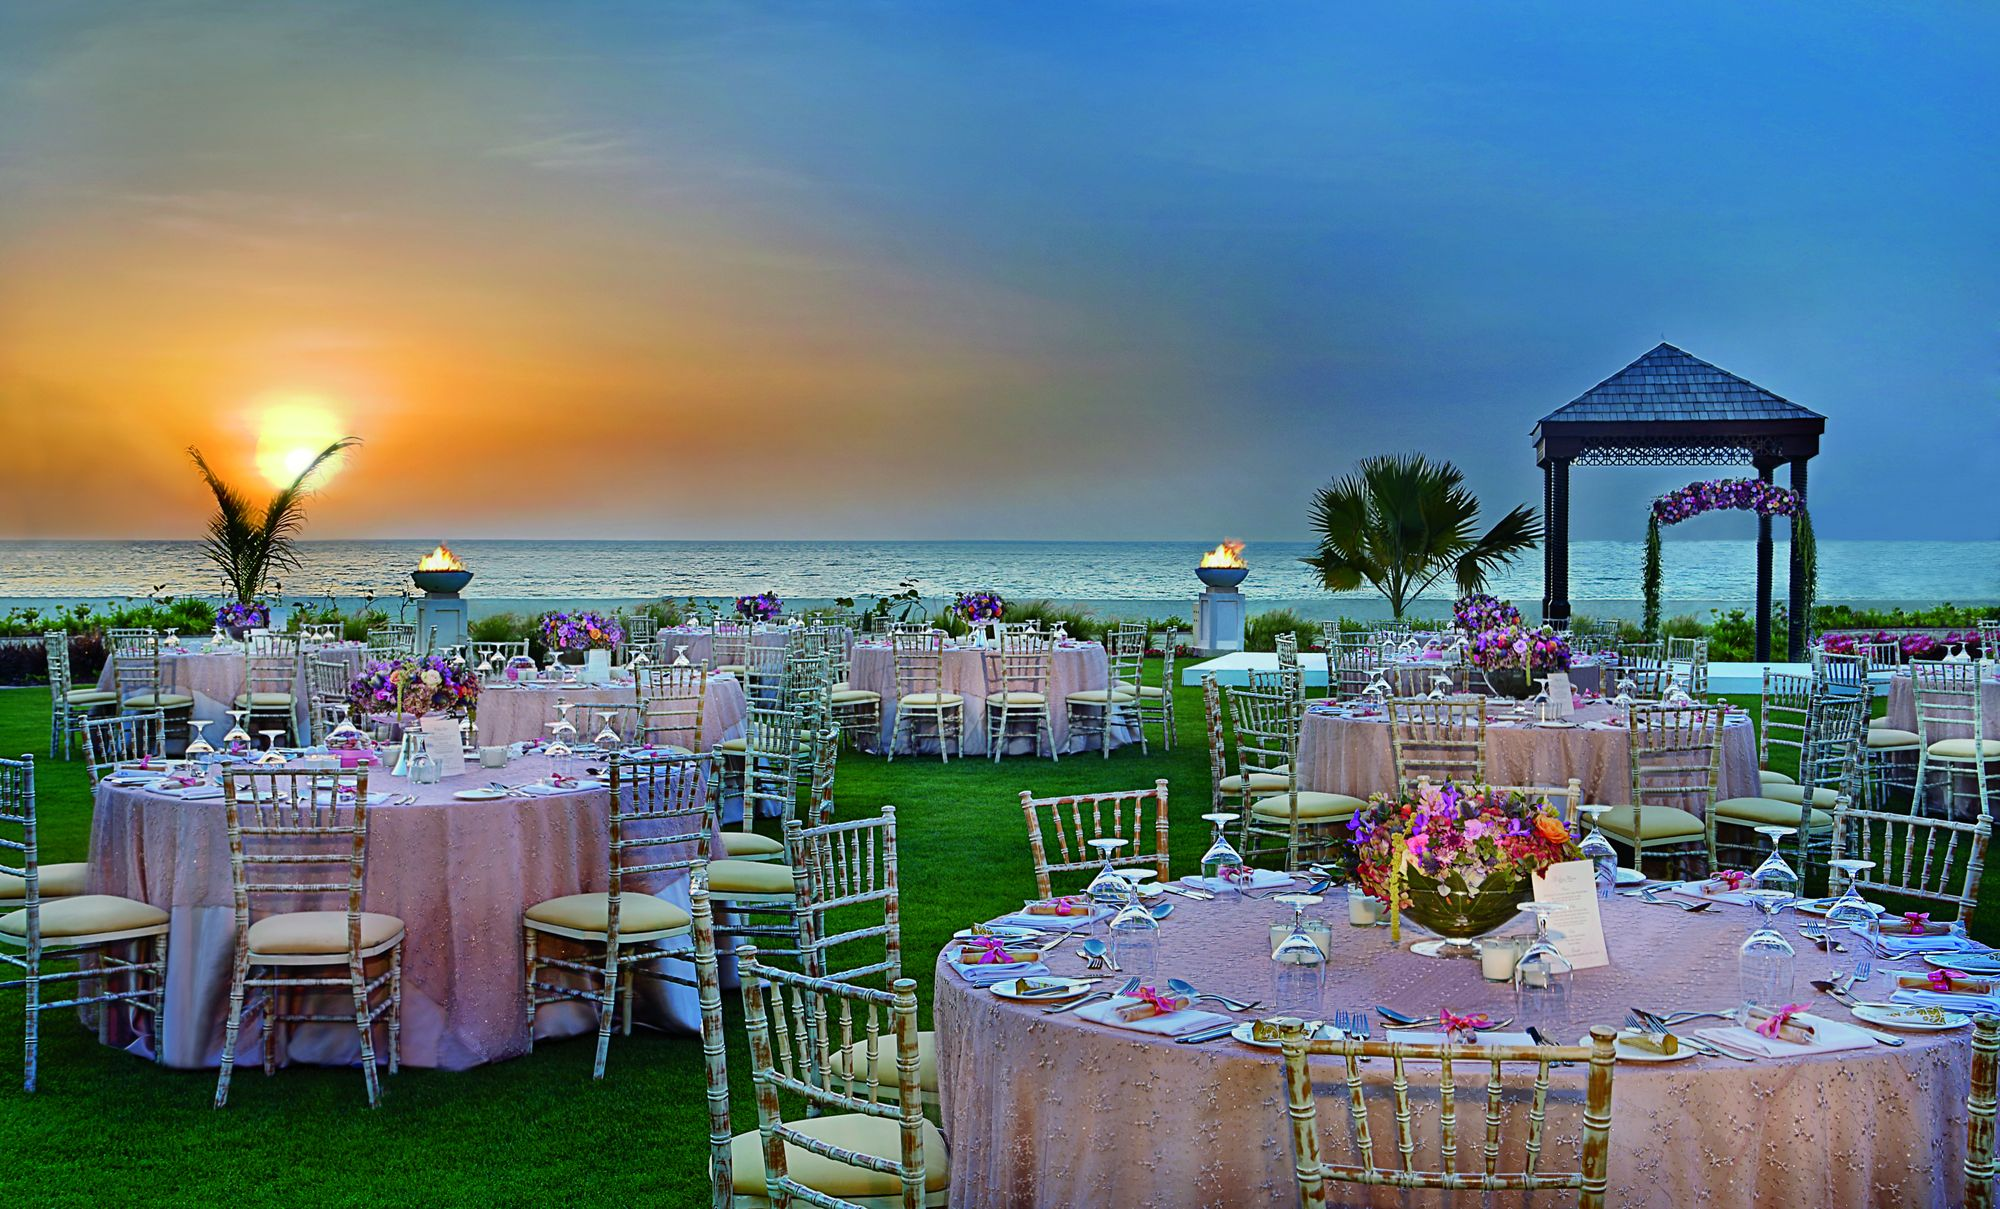 Wedding Venues In Dubai Outdoor Wedding Venues Dubai The Ritz